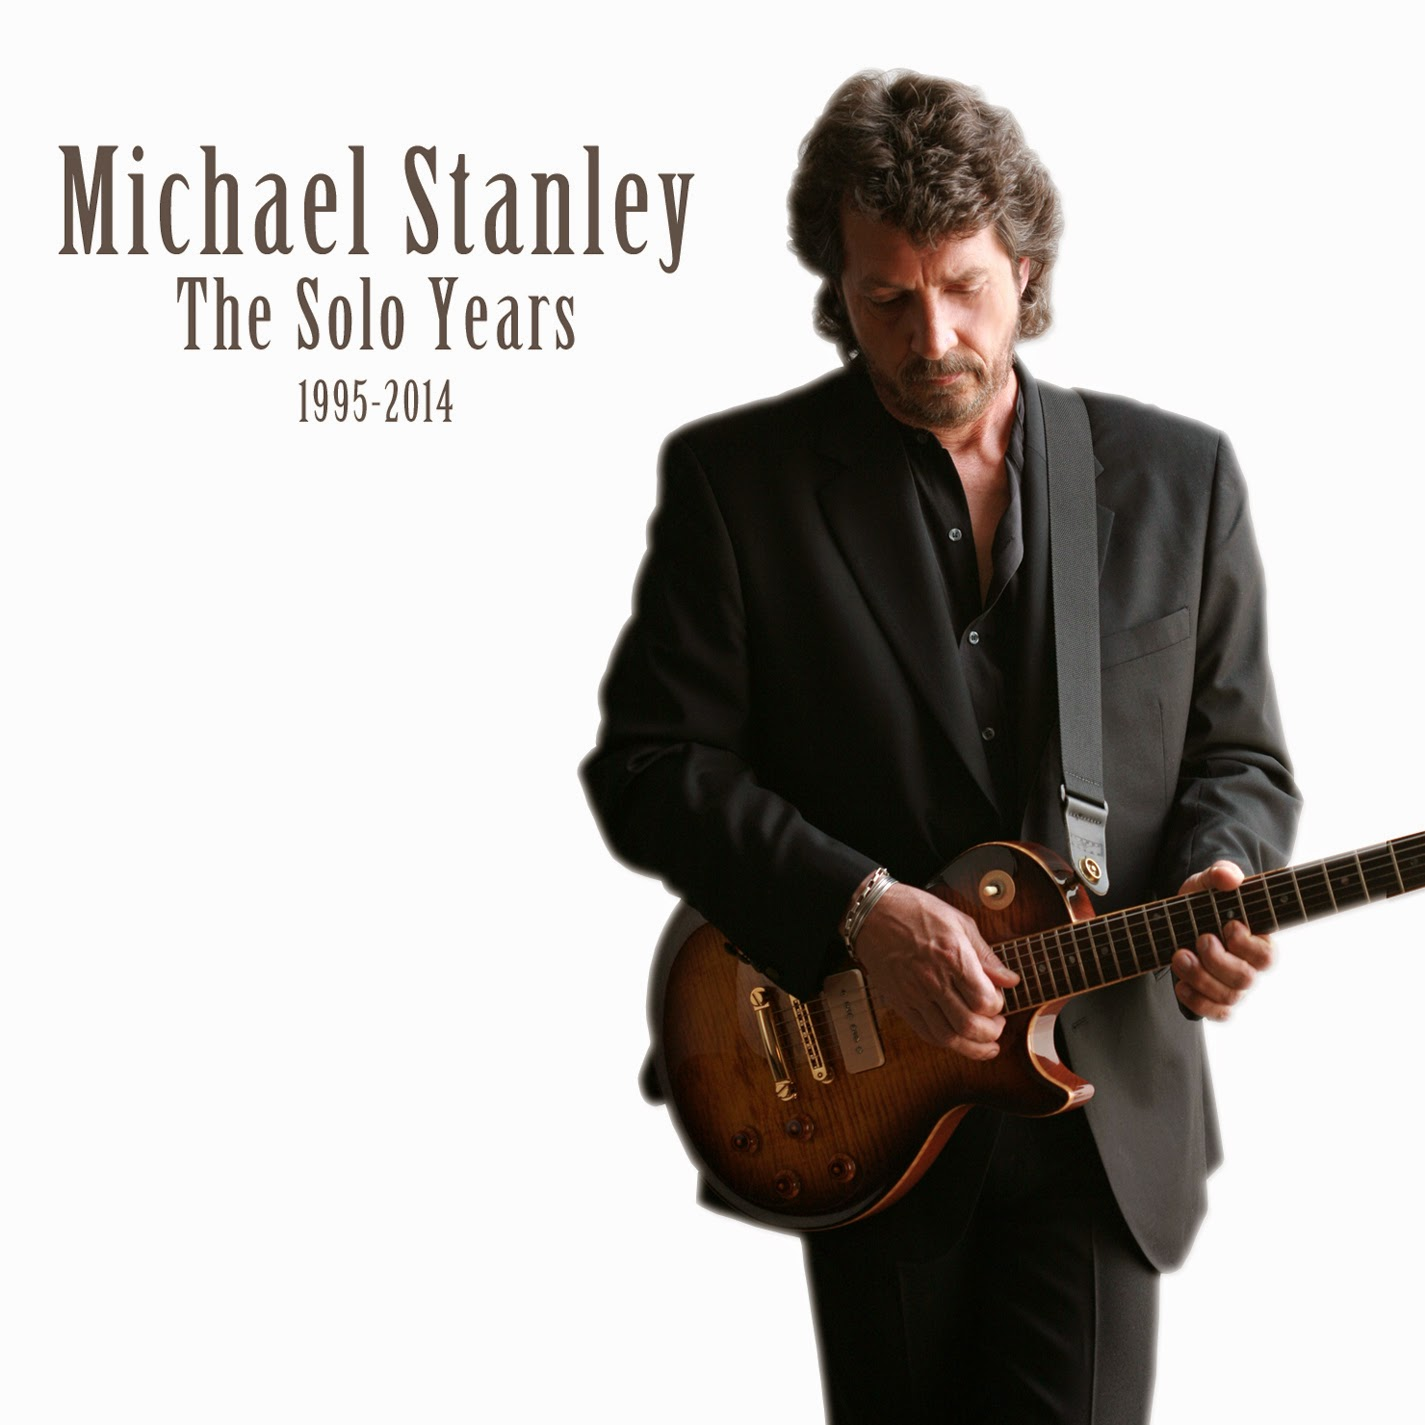 Michael Stanley - The Solo Years 1995-2014